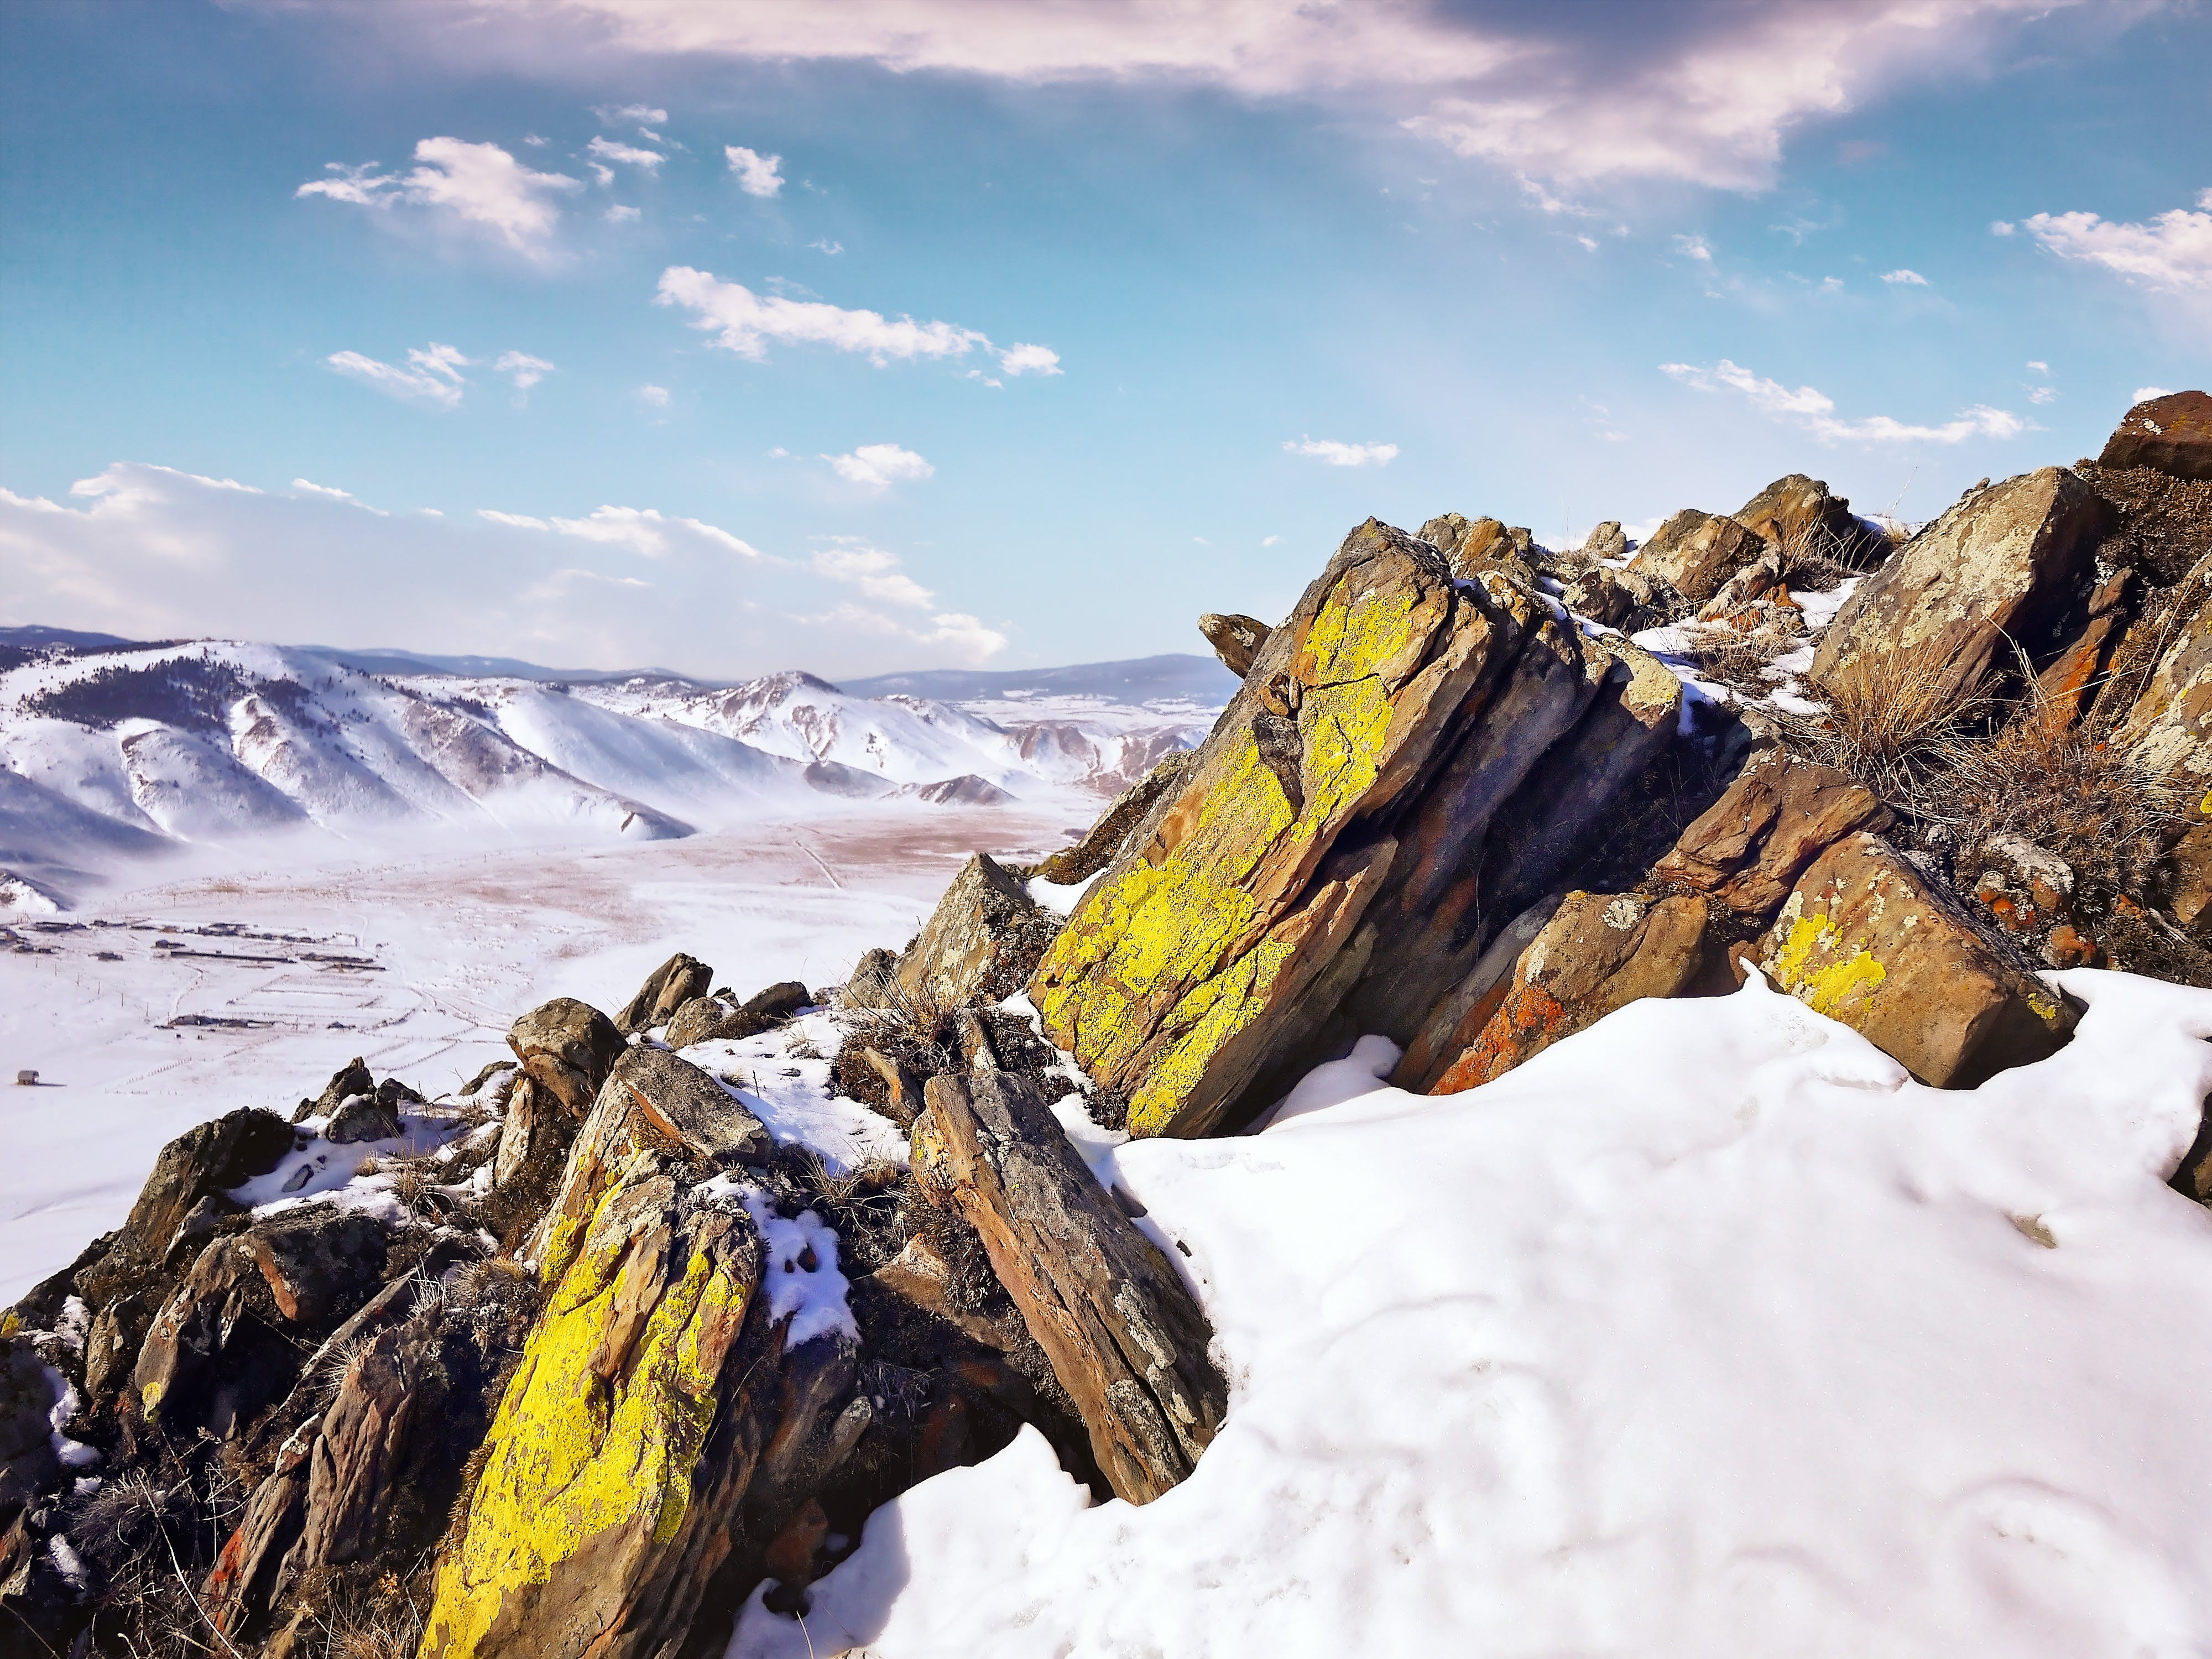 White and Brown Rocks On Snow Mountain